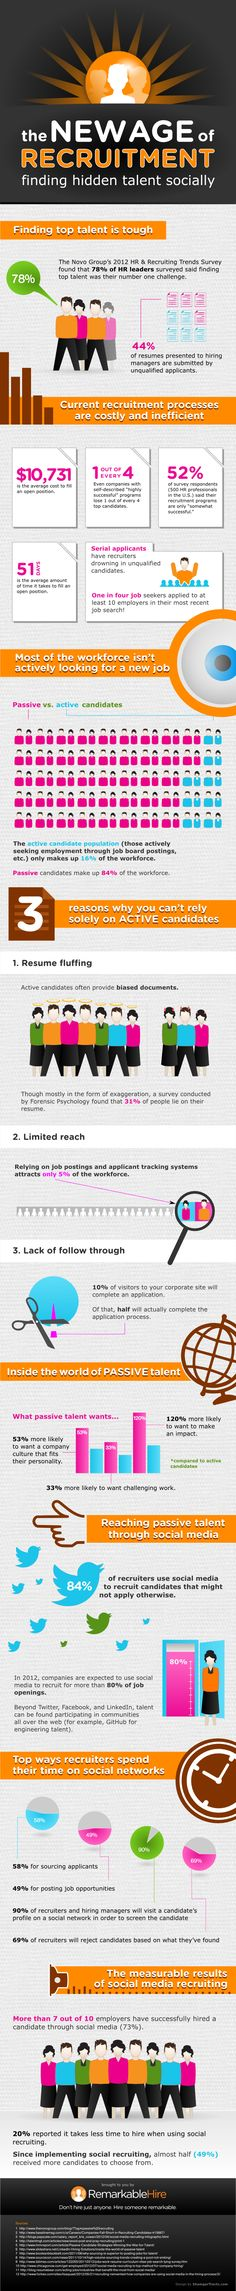 The new age of recruitment finding hidden talent socially #infographic